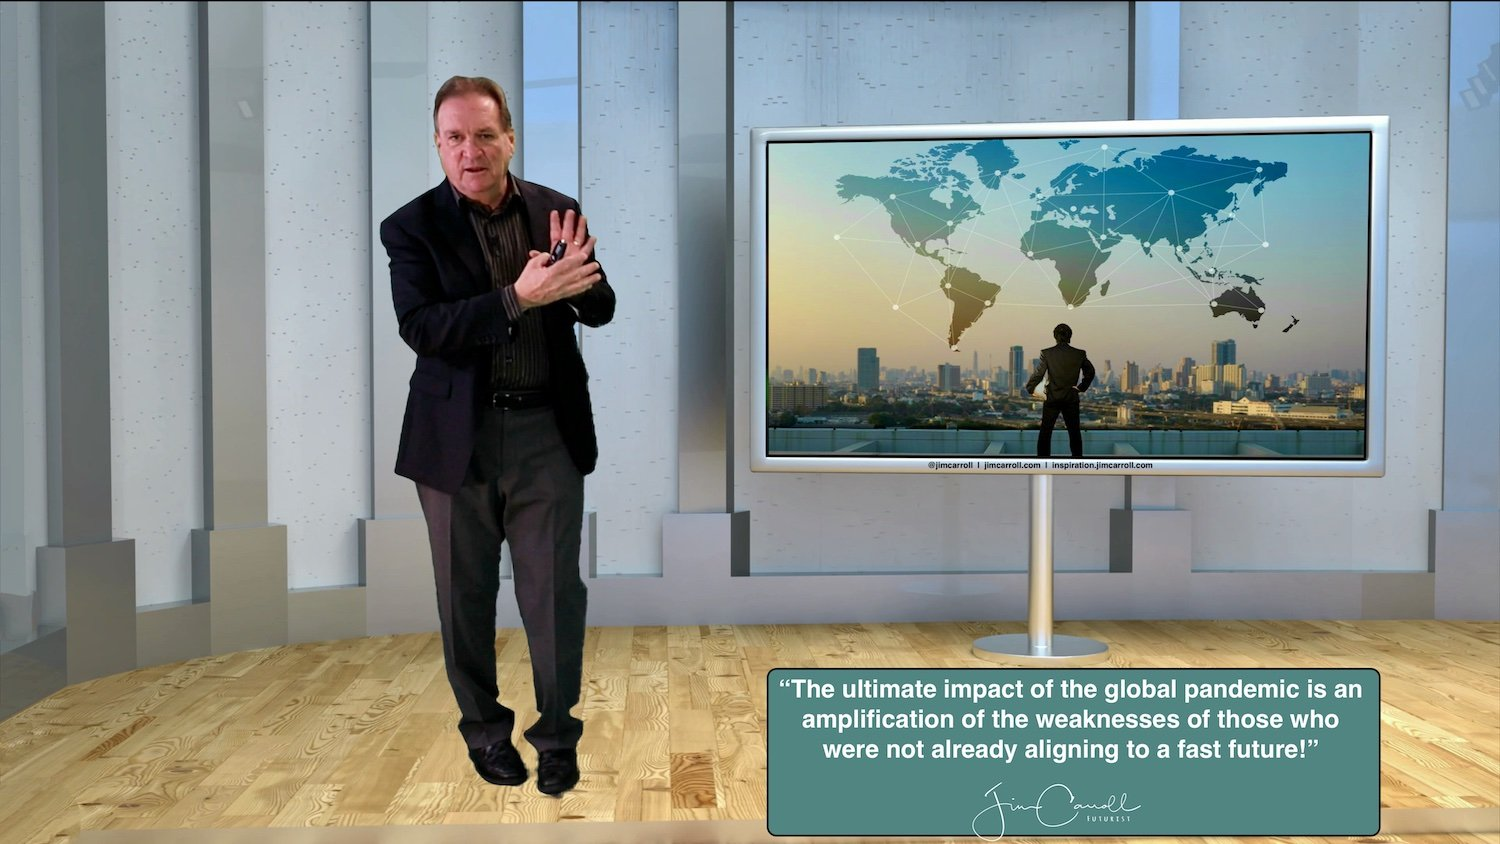 """Daily Inspiration: """"The ultimate impact of the global pandemic is an amplification of the weaknesses of those who were not already aligning to a fast future!"""""""